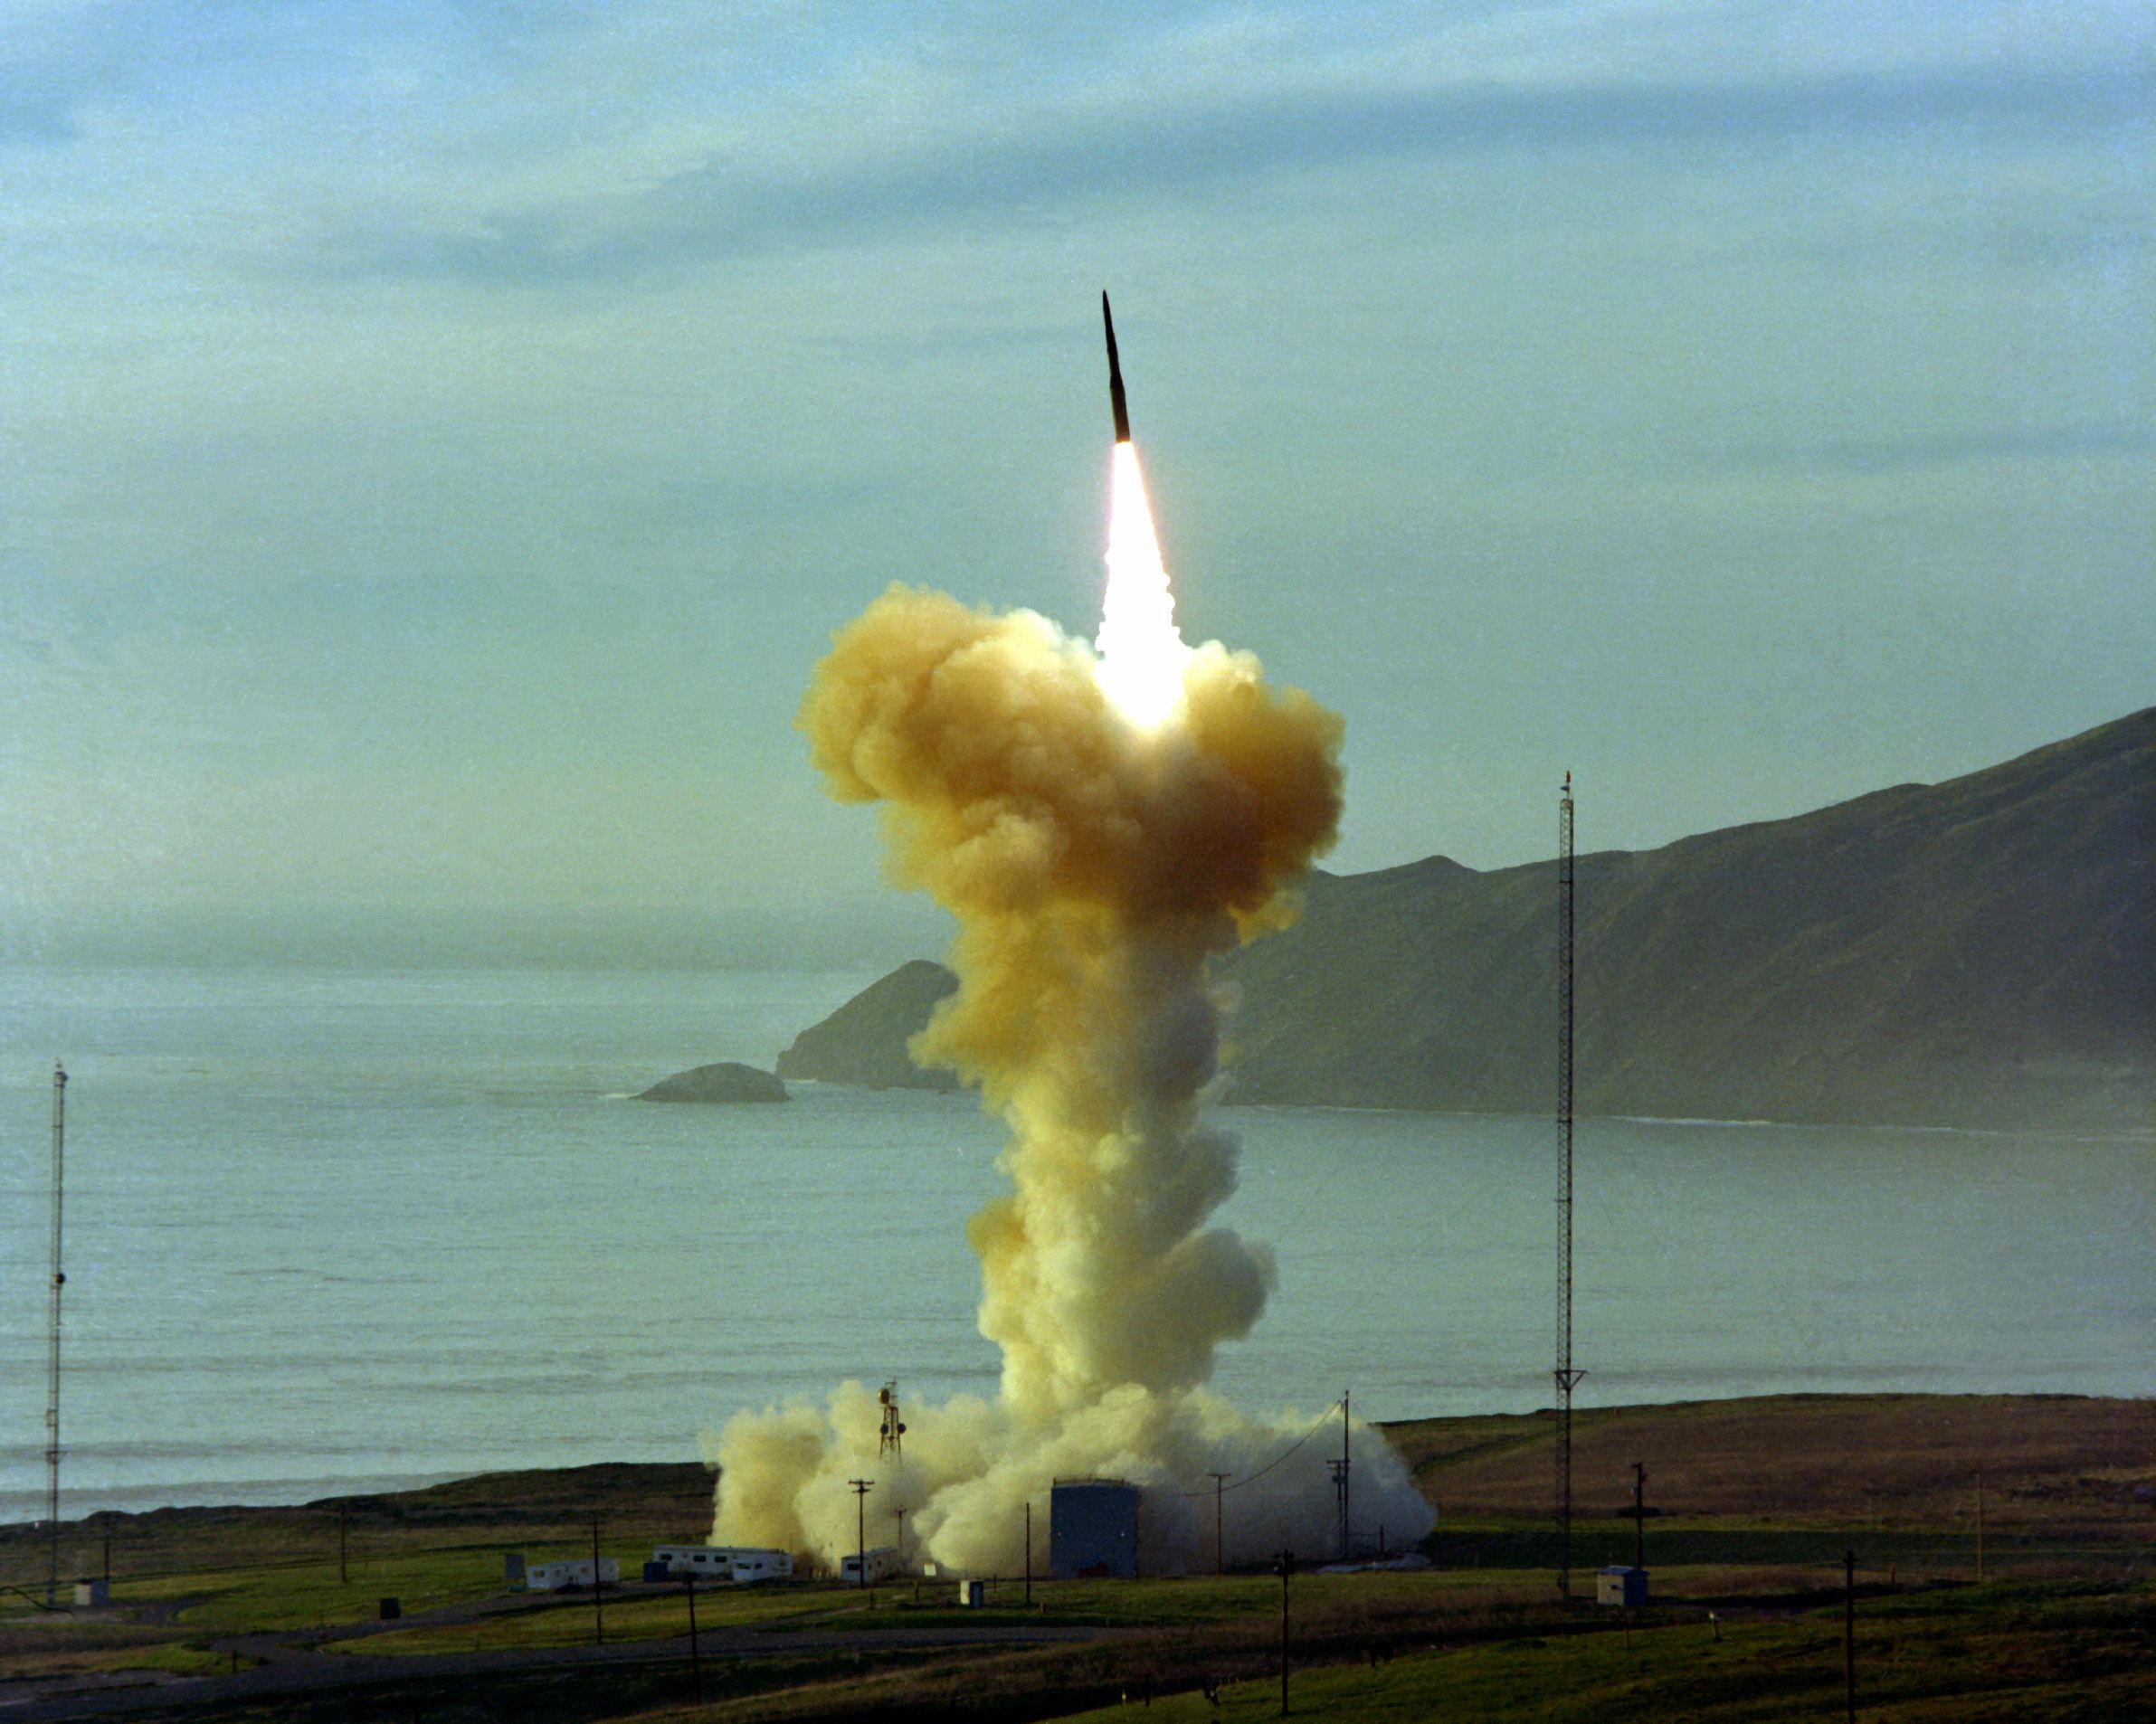 55 Years Ago Today, an Explosion Toppled an ICBM's Warhead